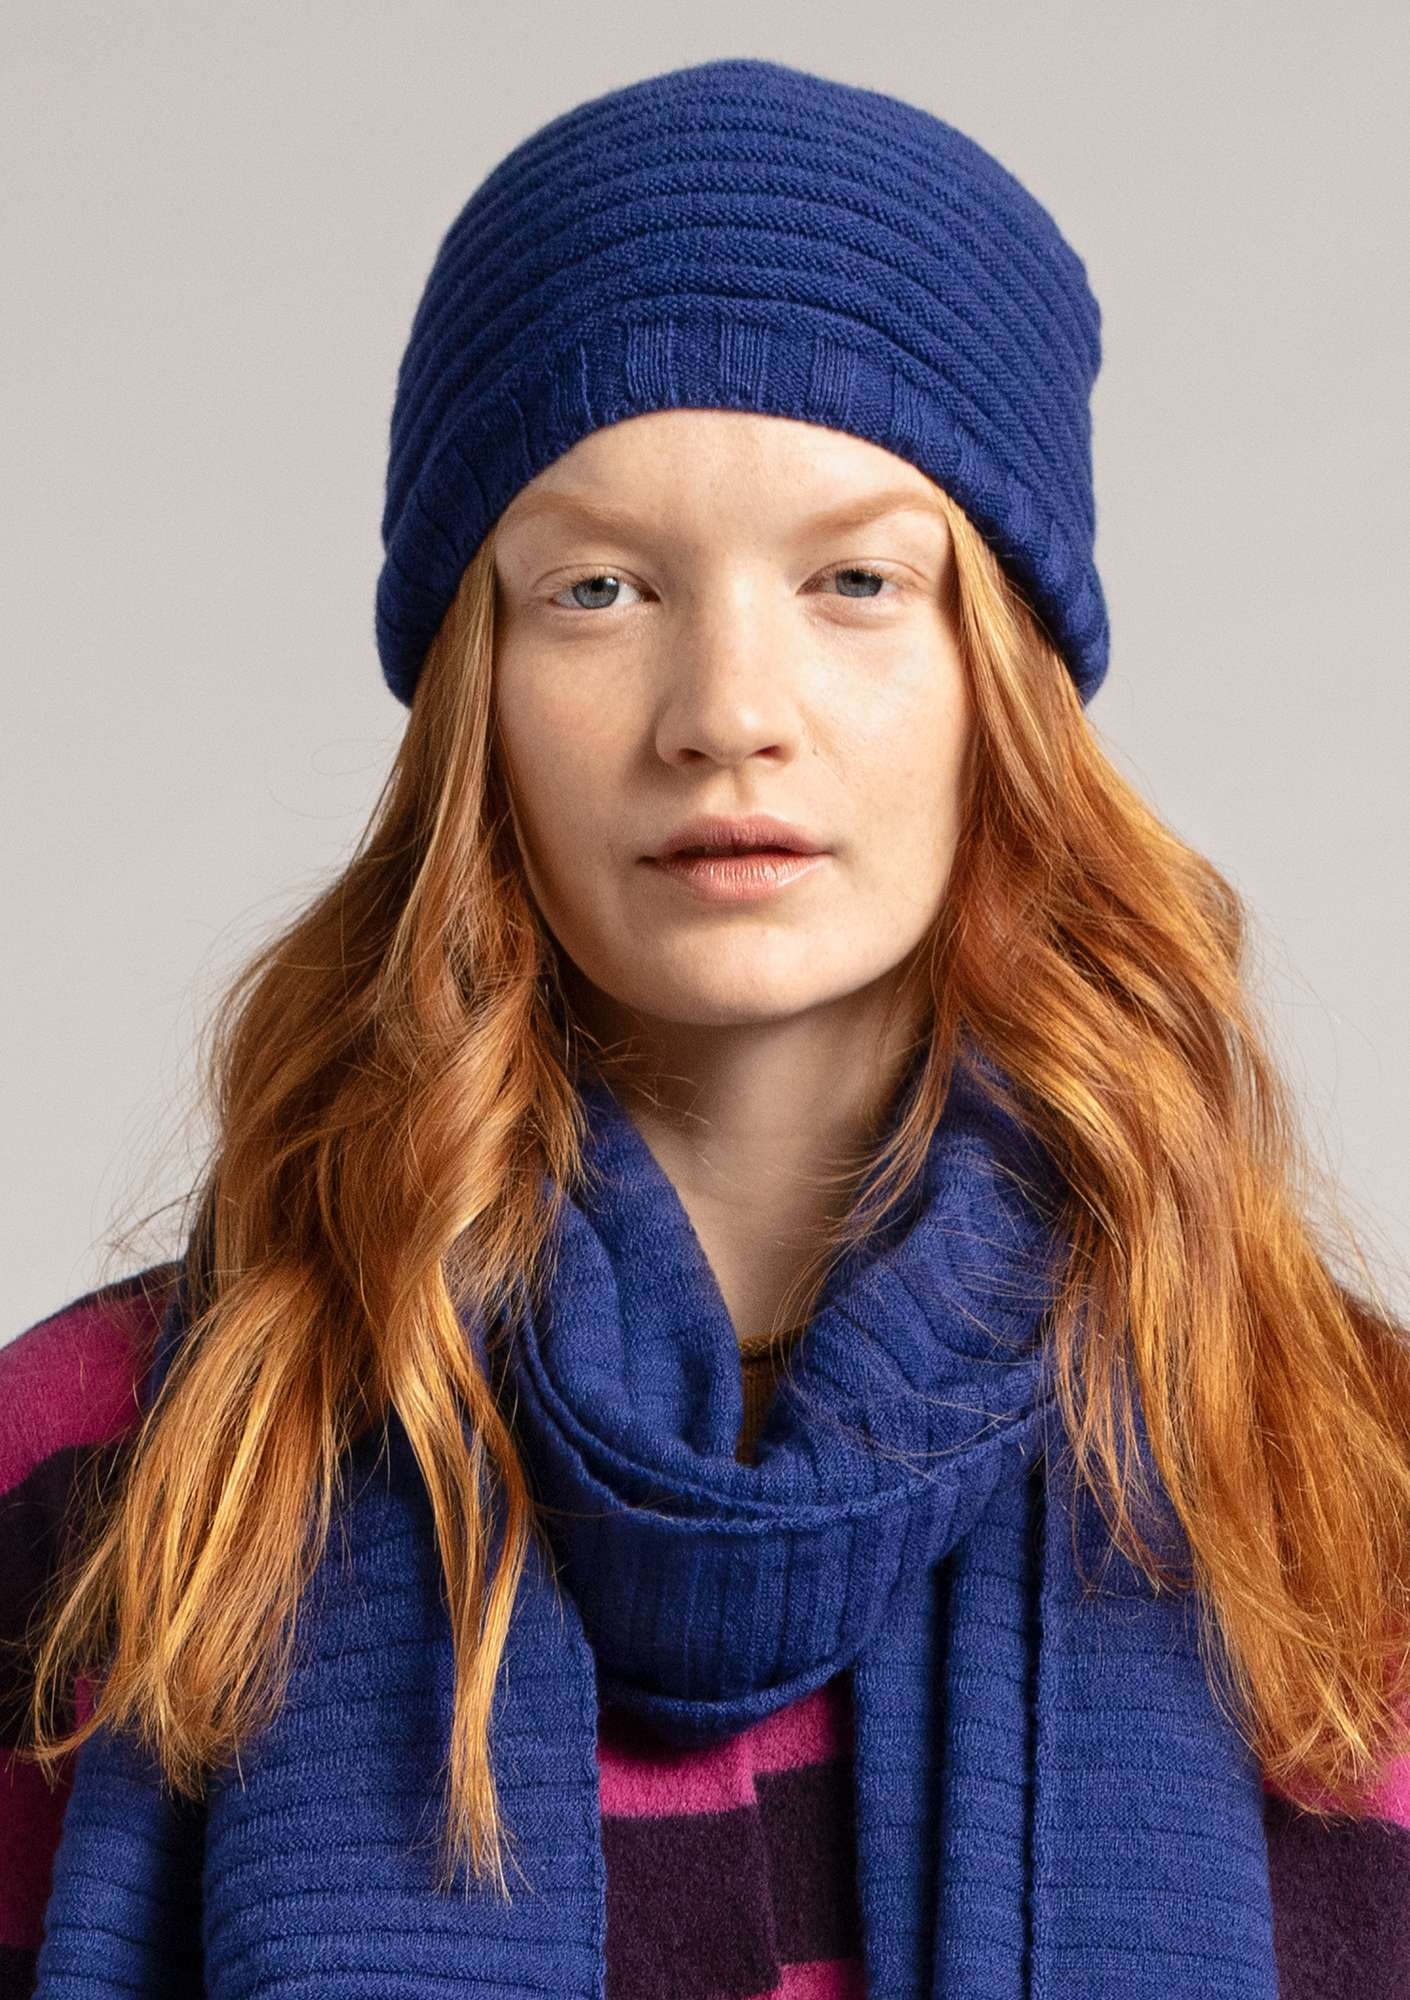 Pleated hat in a recycled cashmere blend violet